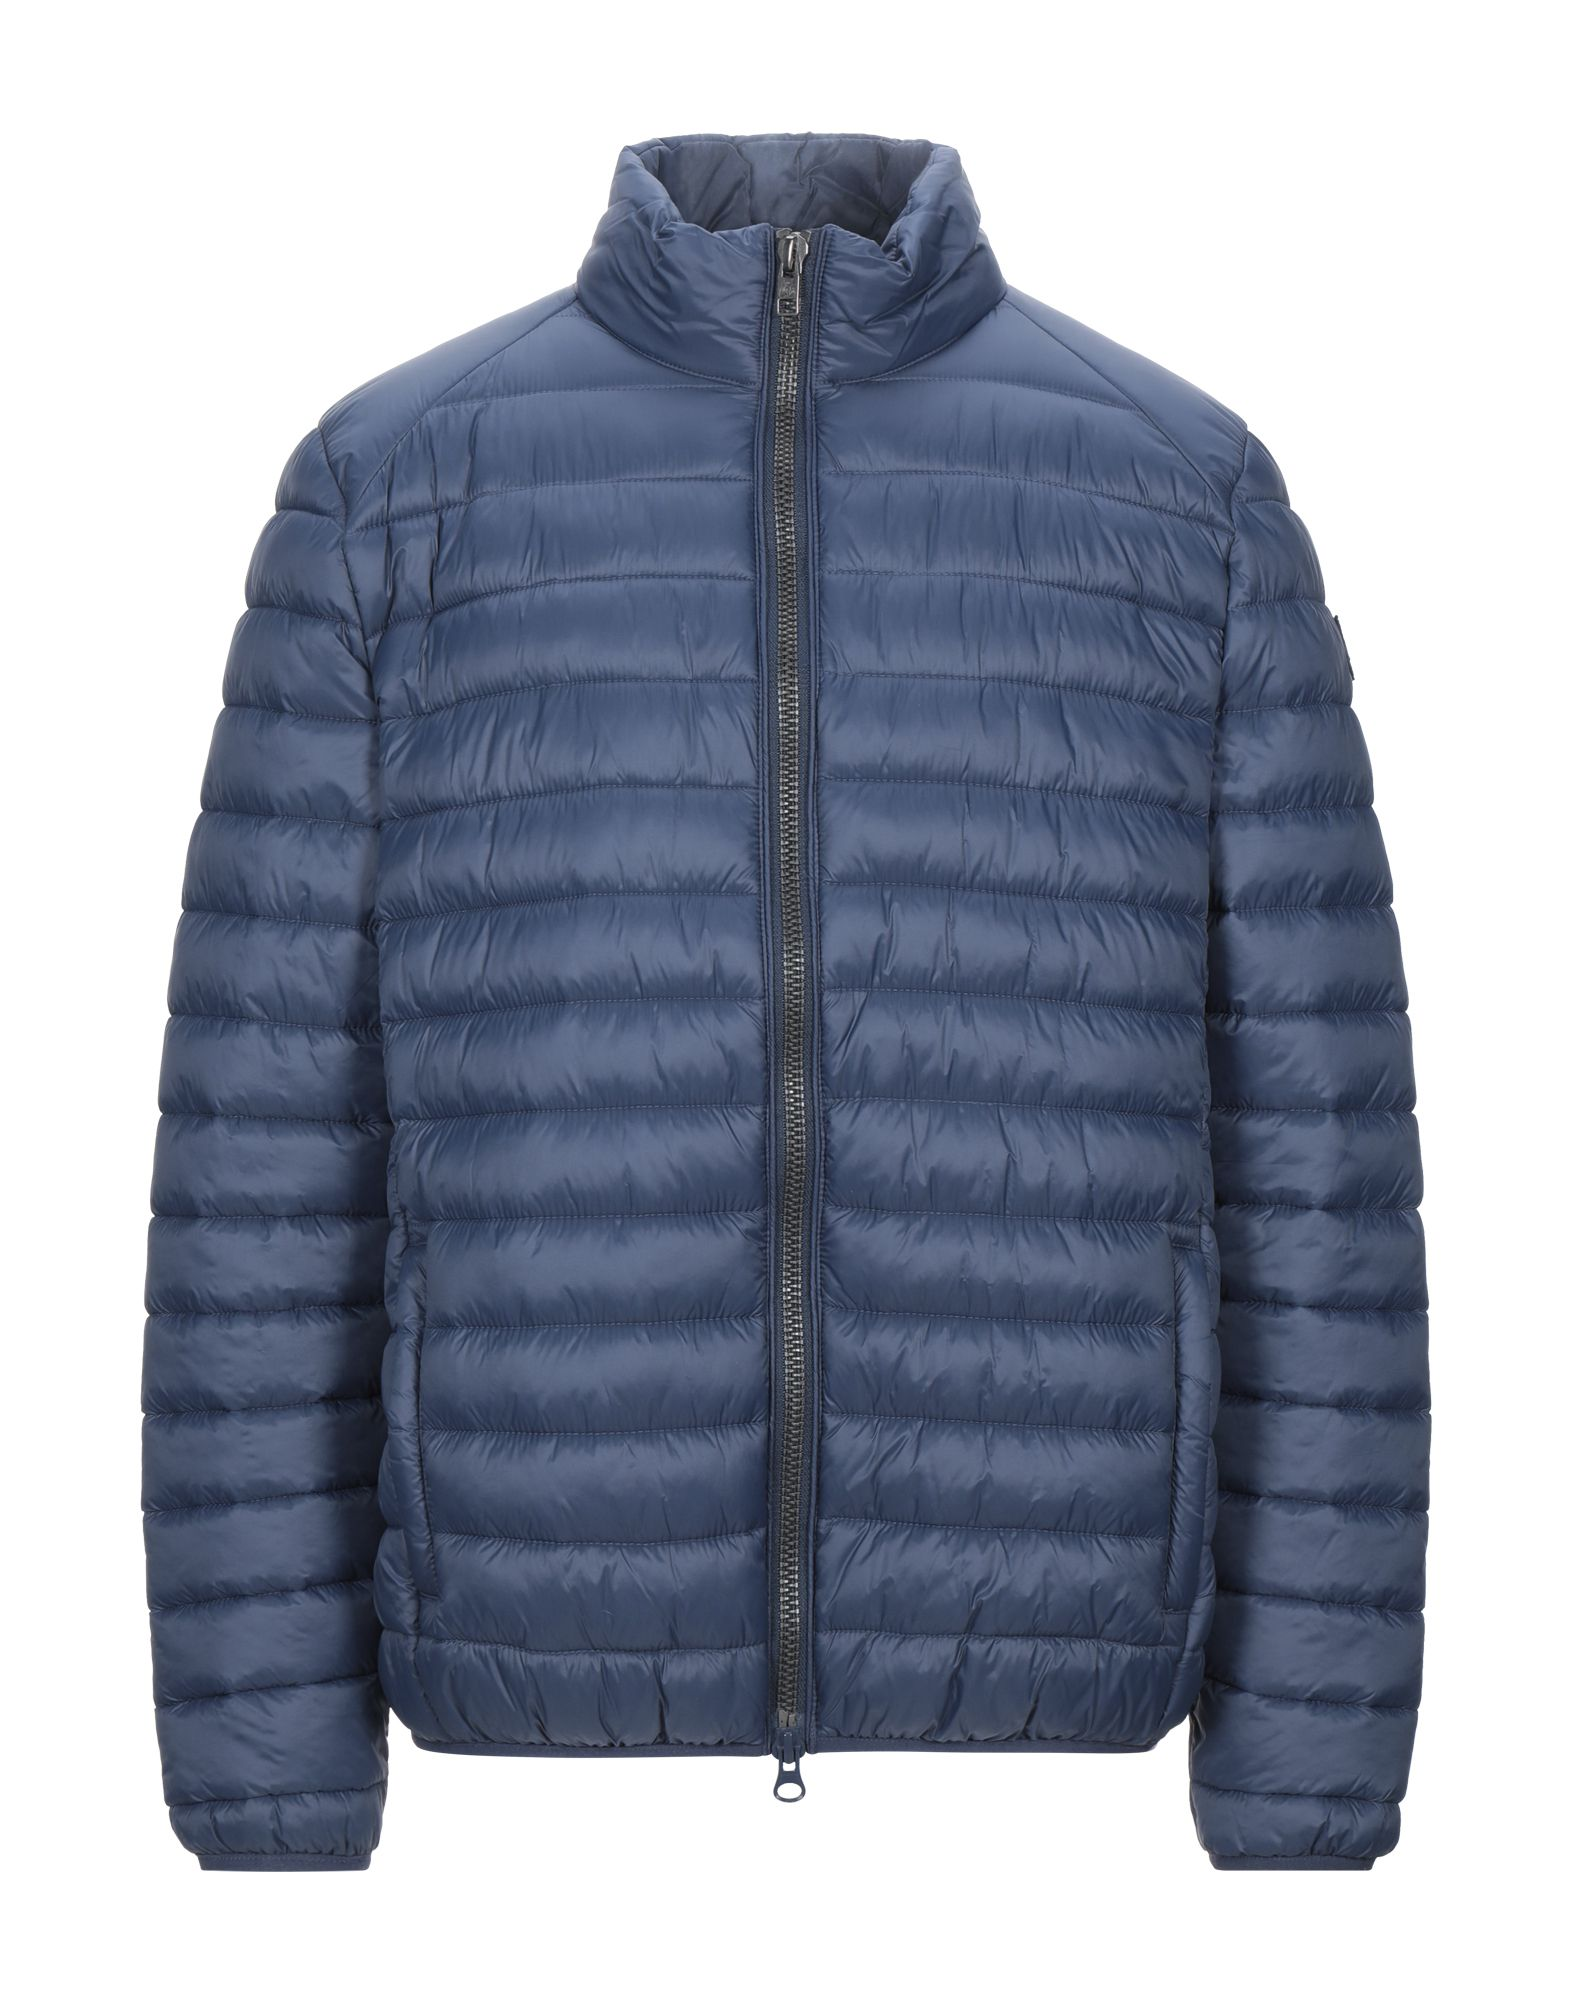 ARMATA DI MARE Synthetic Down Jackets - Item 41972970